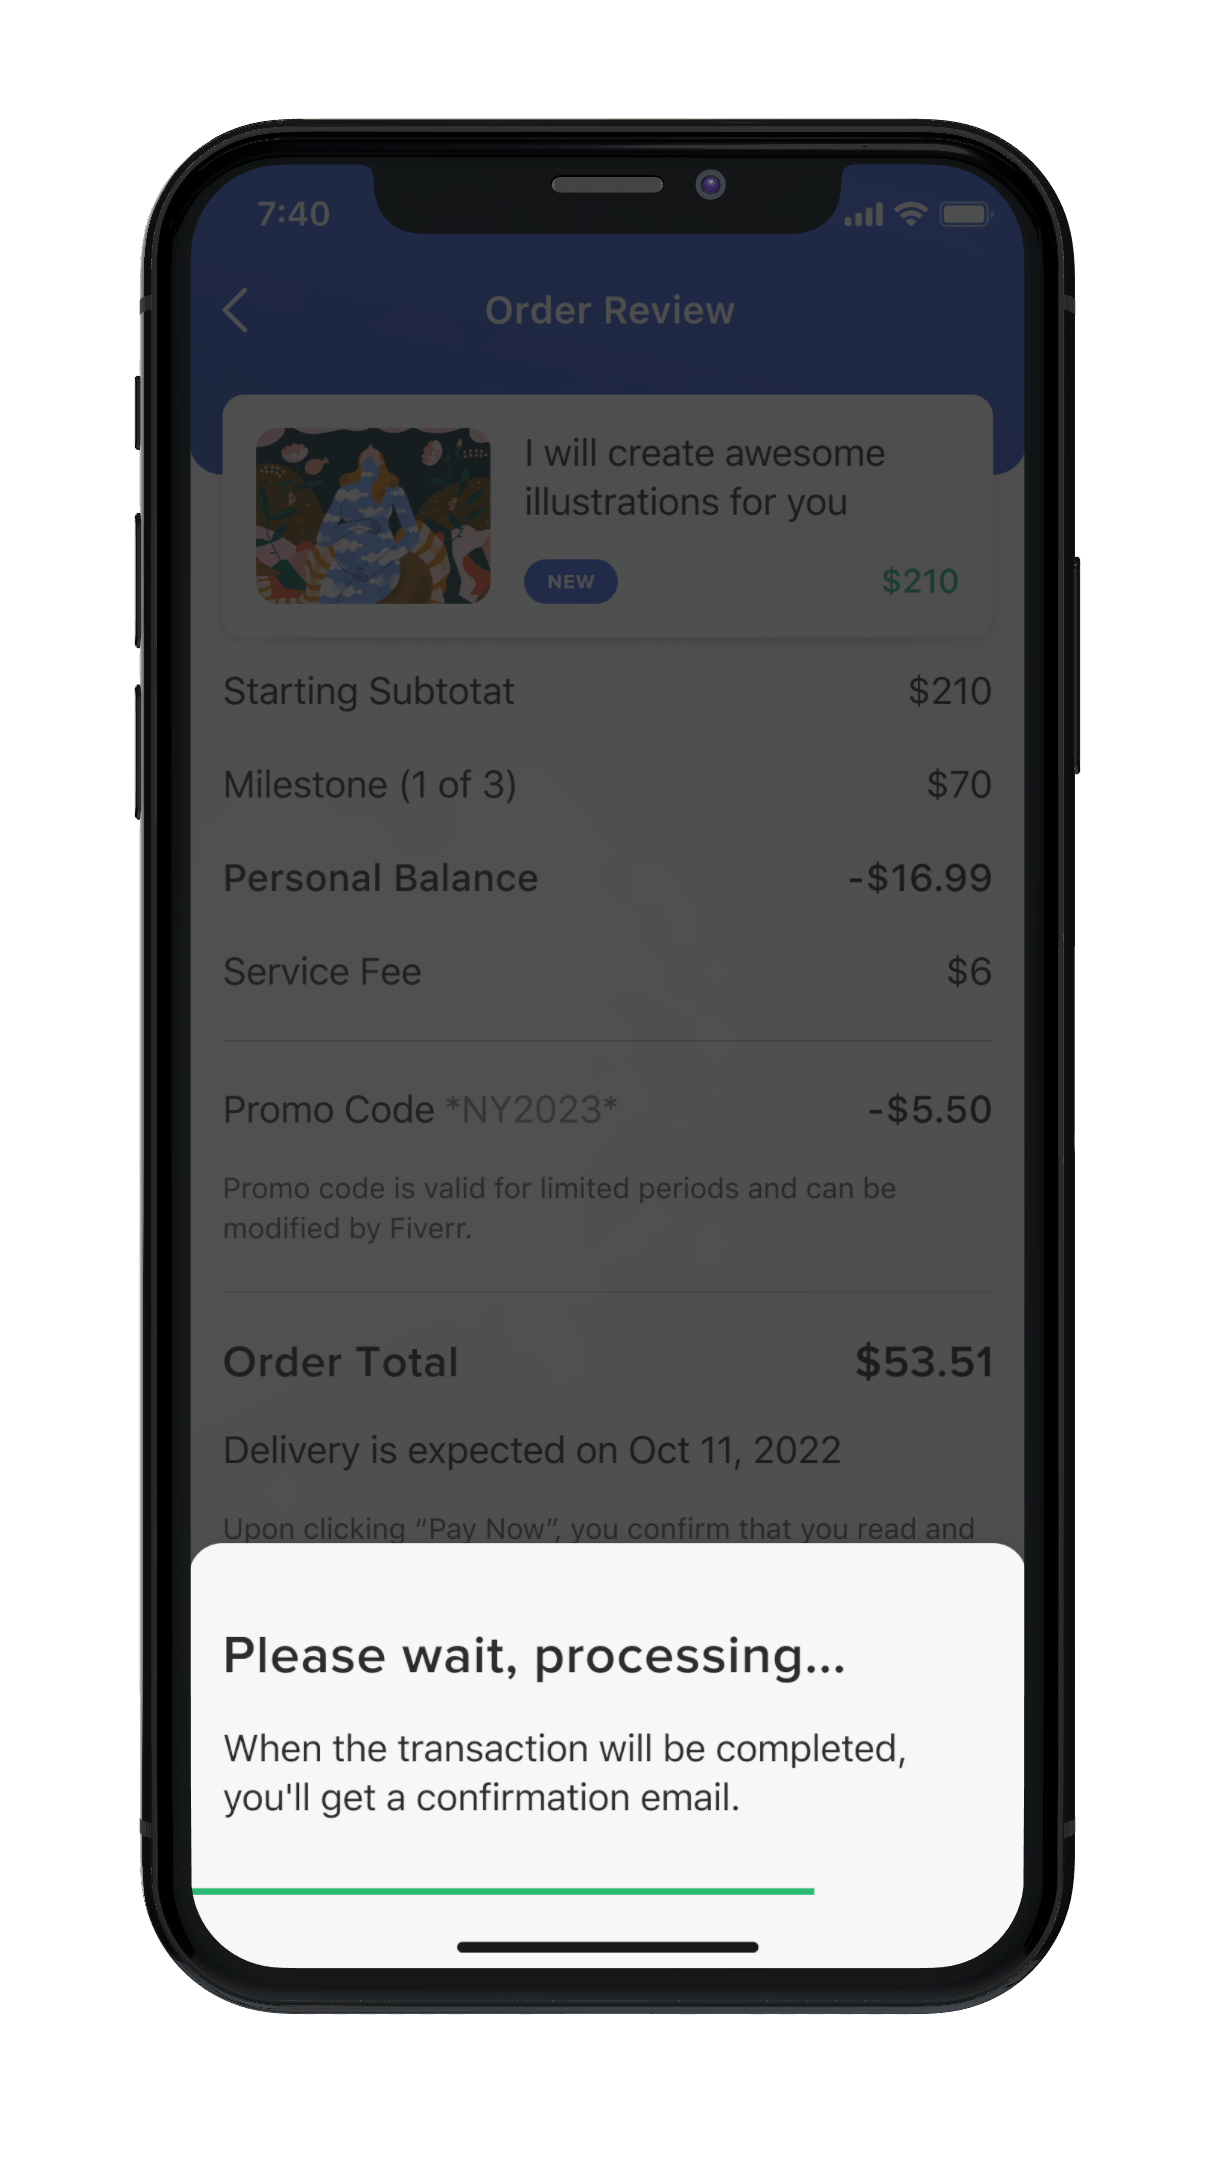 orderreview_08